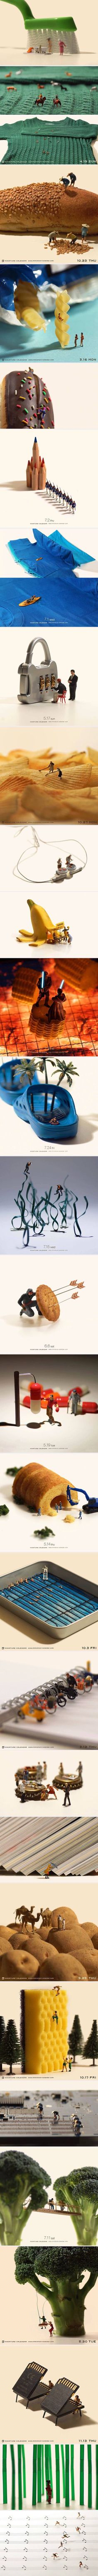 Miniature things - 9GAG